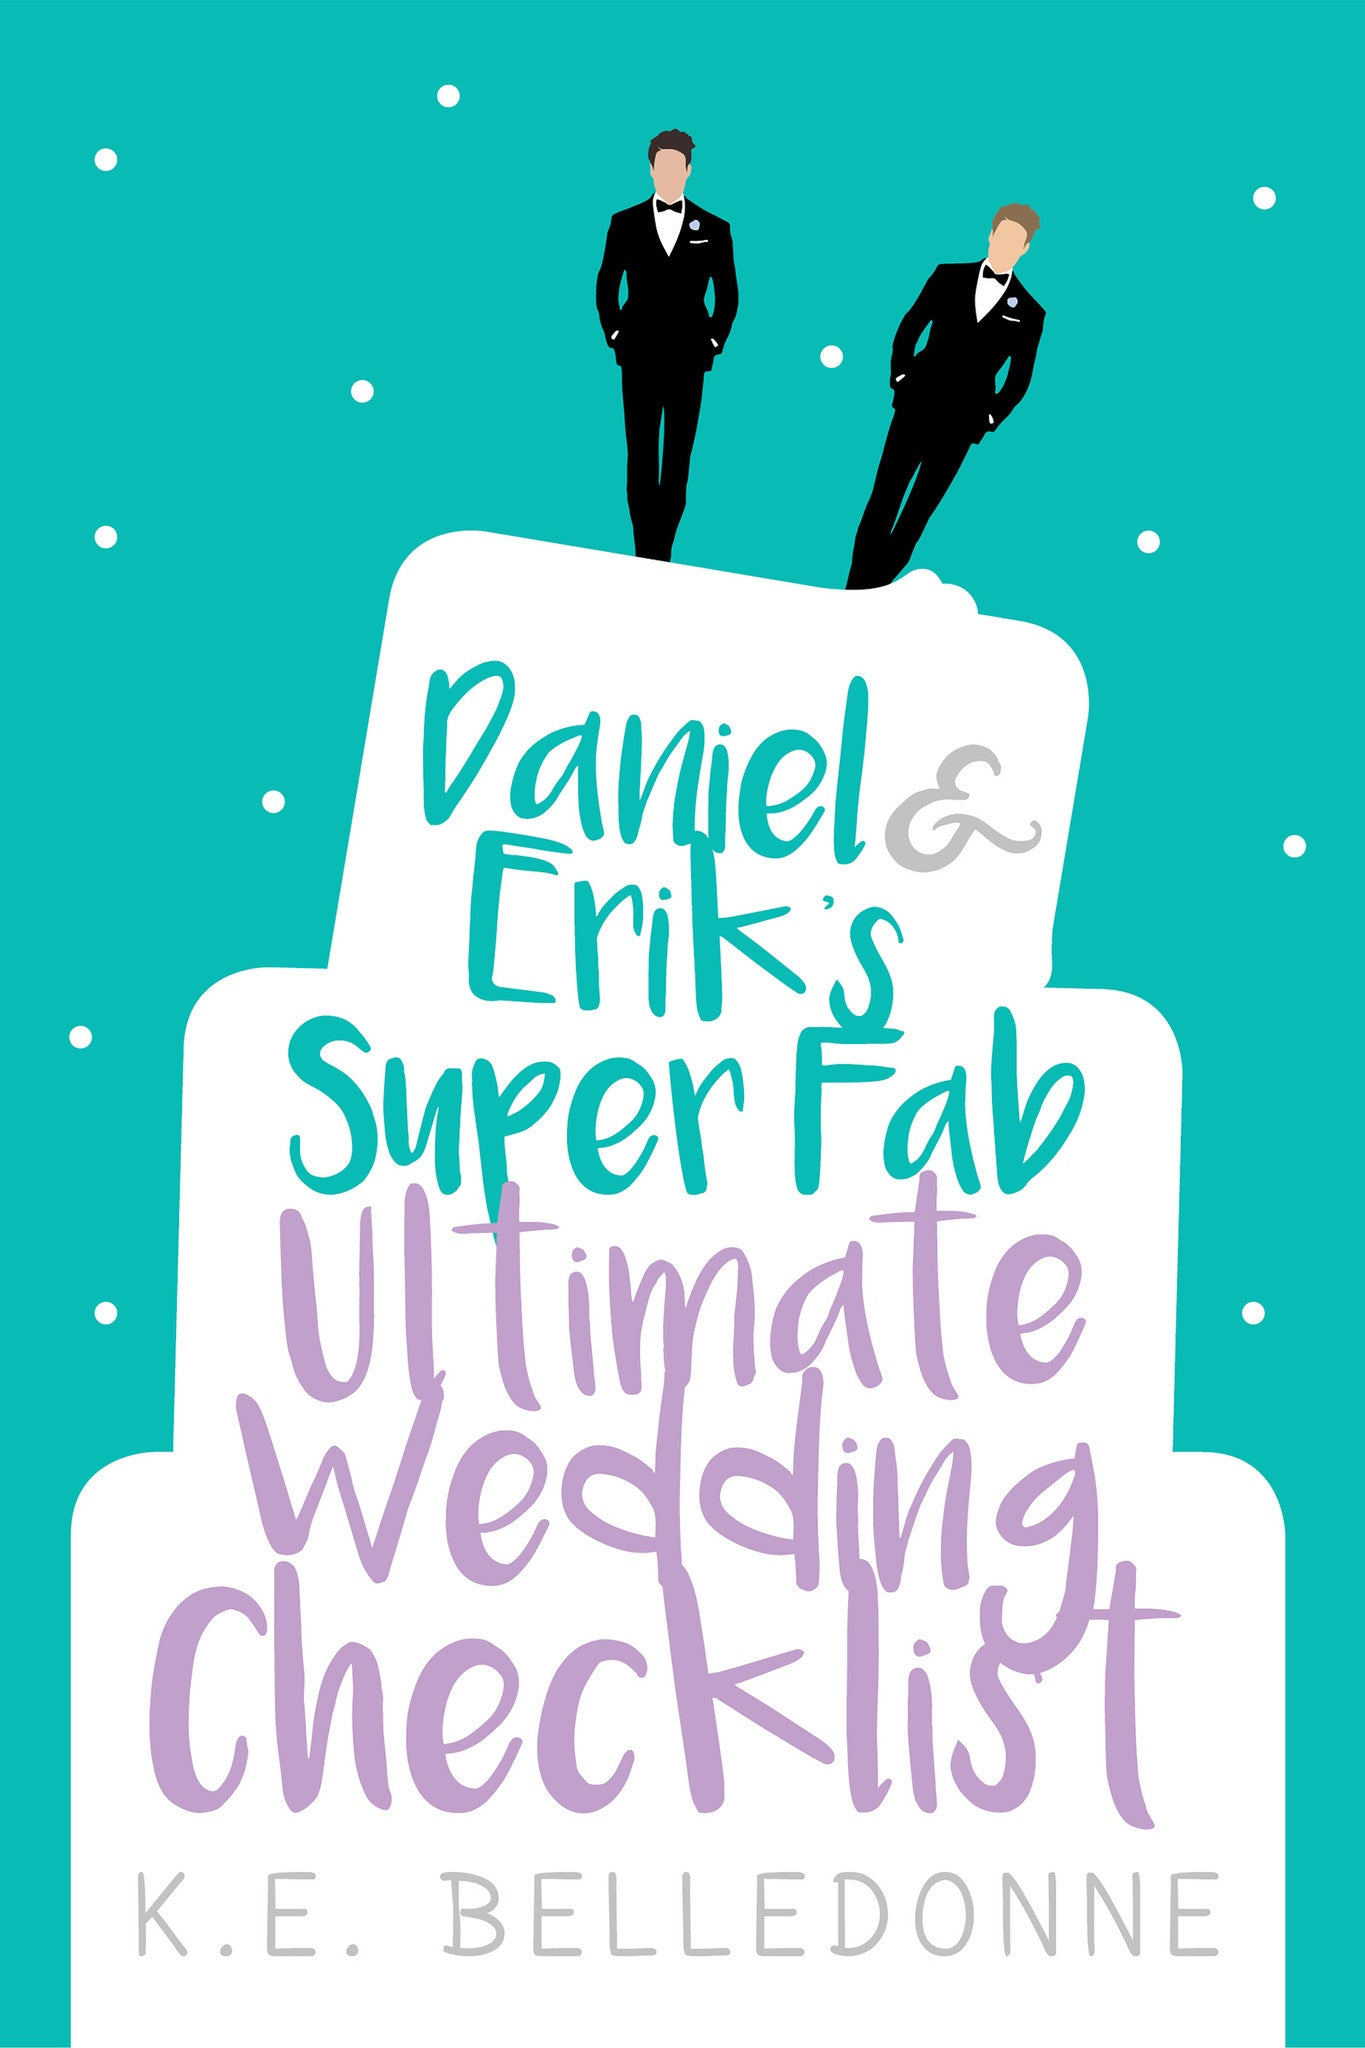 Daniel & Erik's Super Fab Ultimate Wedding Checklist (print edition)